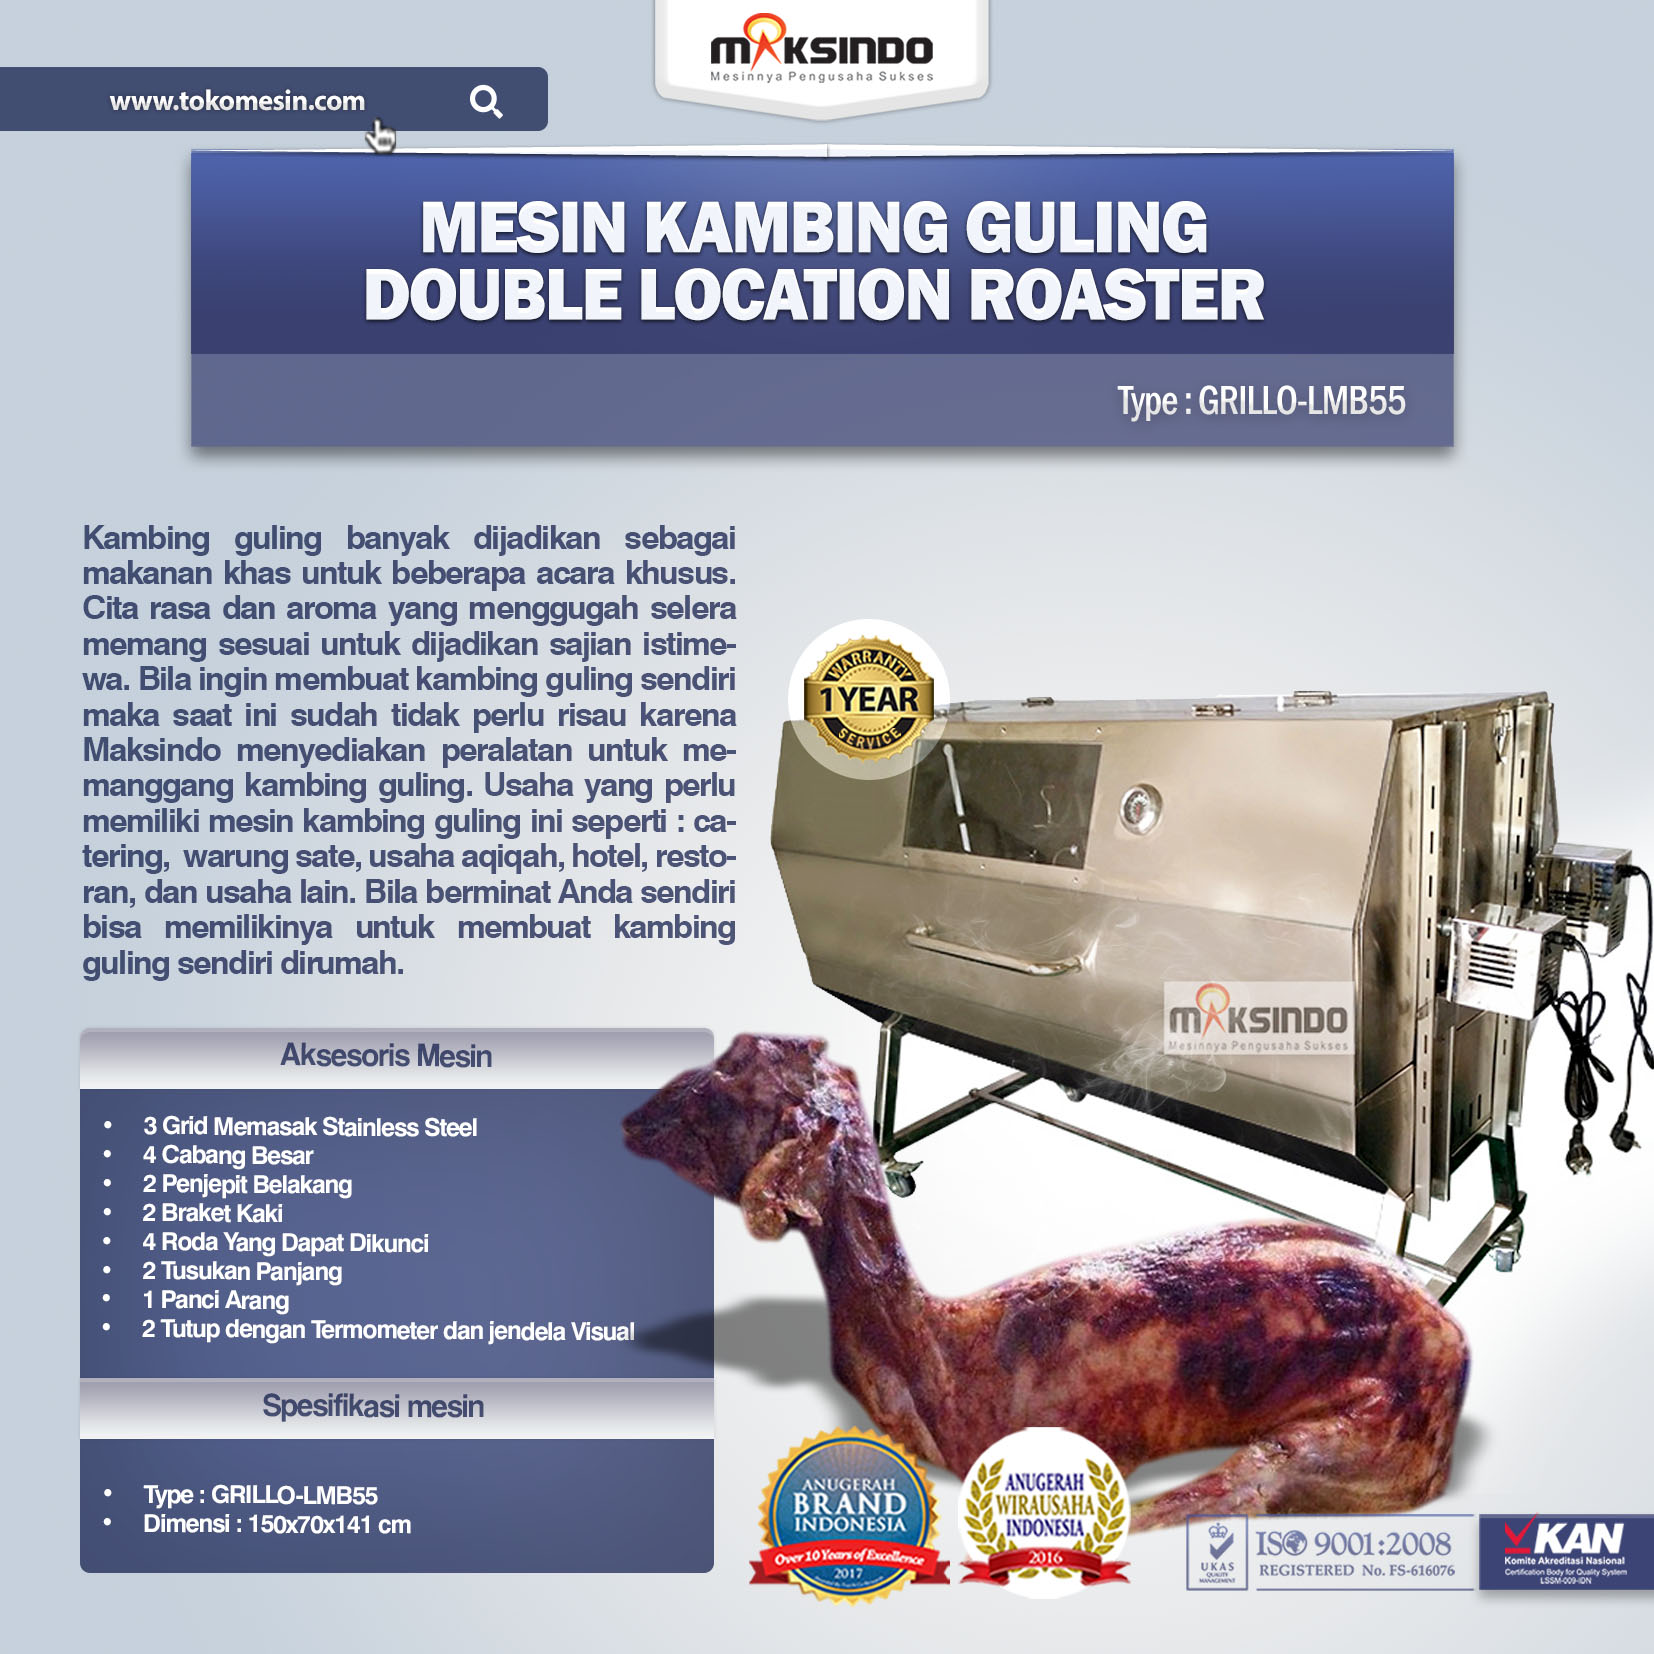 Mesin Kambing Guling Double Location Roaster GRILLO-LMB55